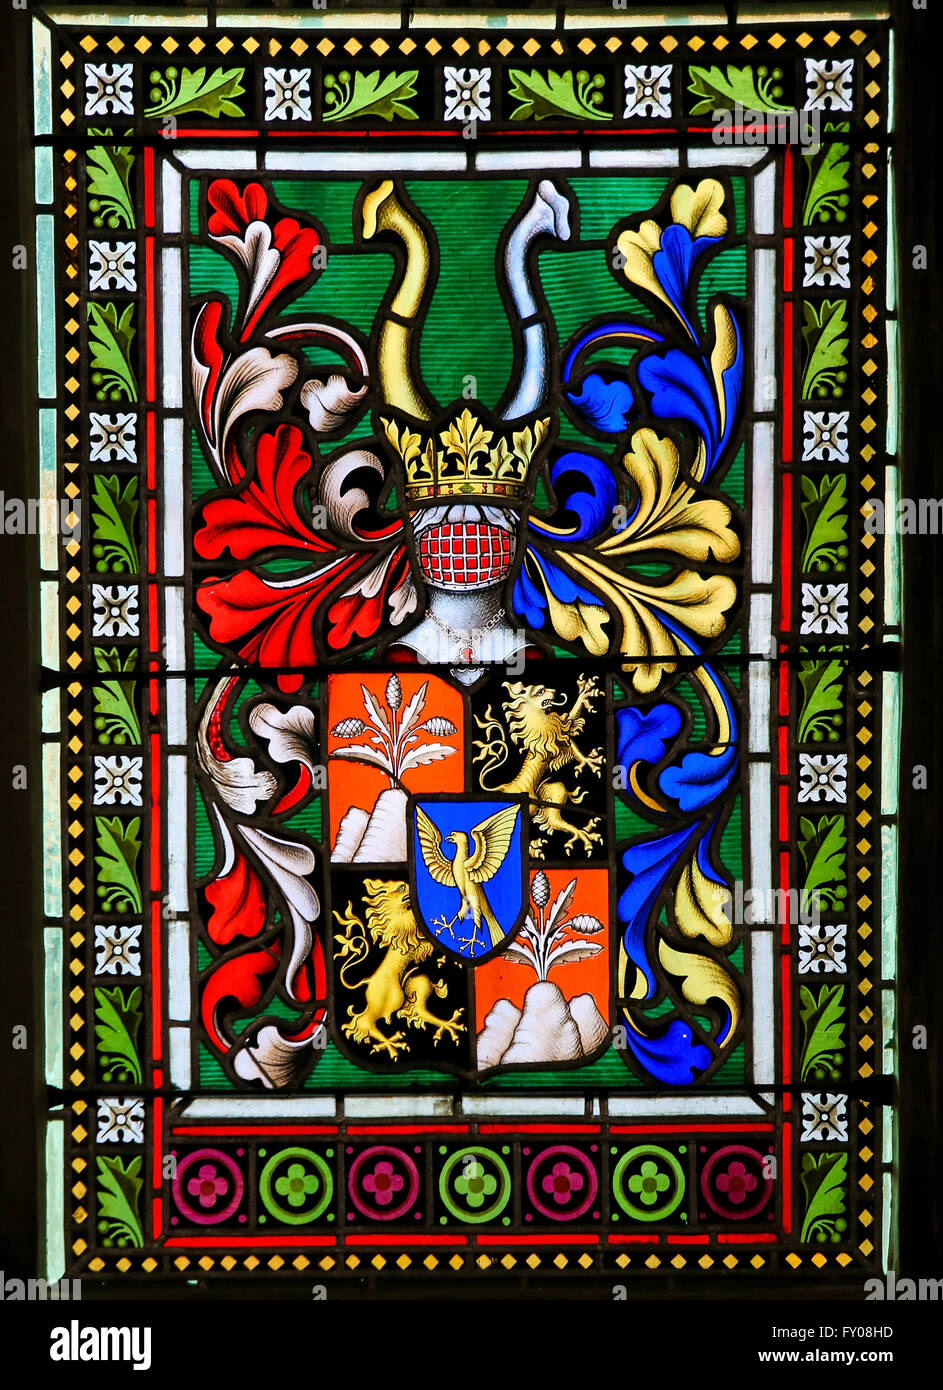 Stained Glass window in St. Vitus Cathedral, Prague, depicting a Coat of Arms - Stock Image